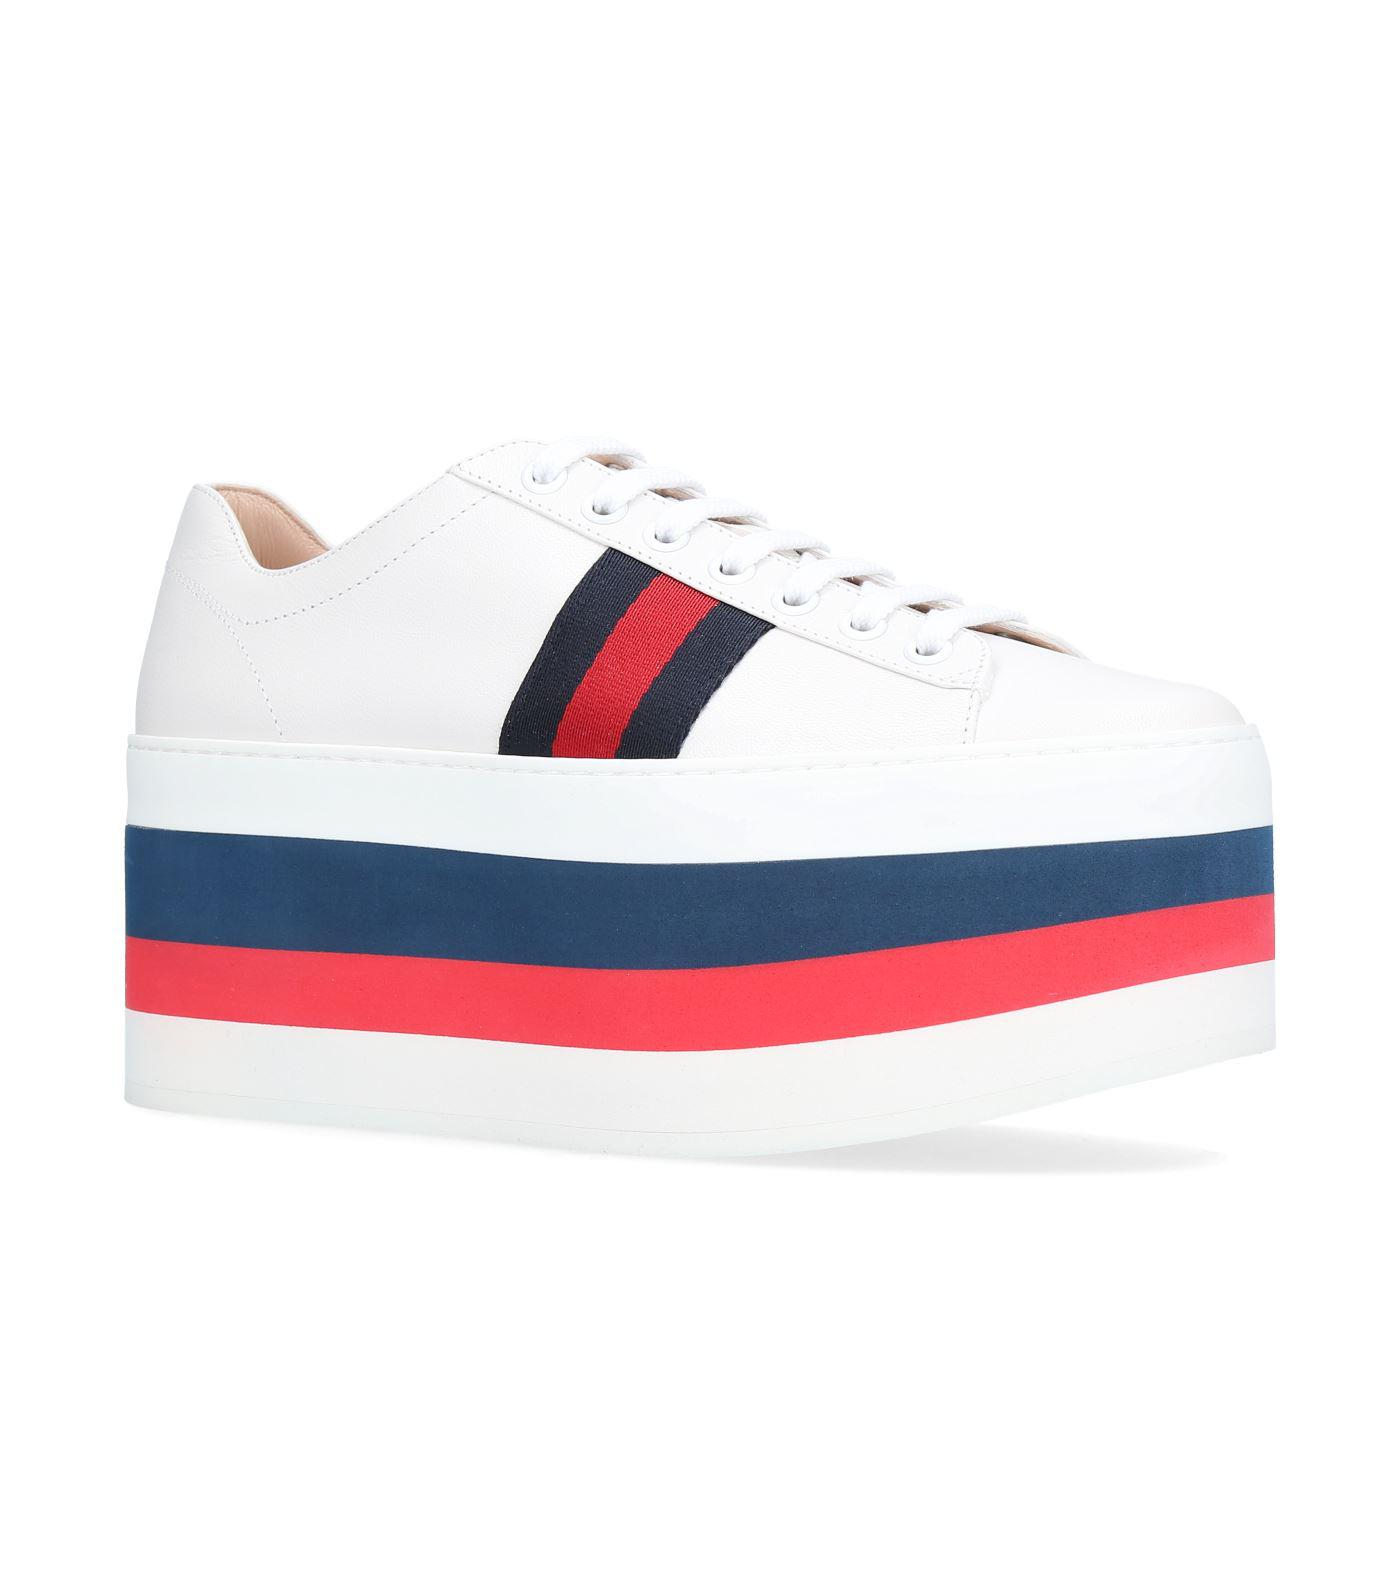 7c7950412b5 Lyst - Gucci Peggy Stripe Platform Sneakers in White - Save 16%